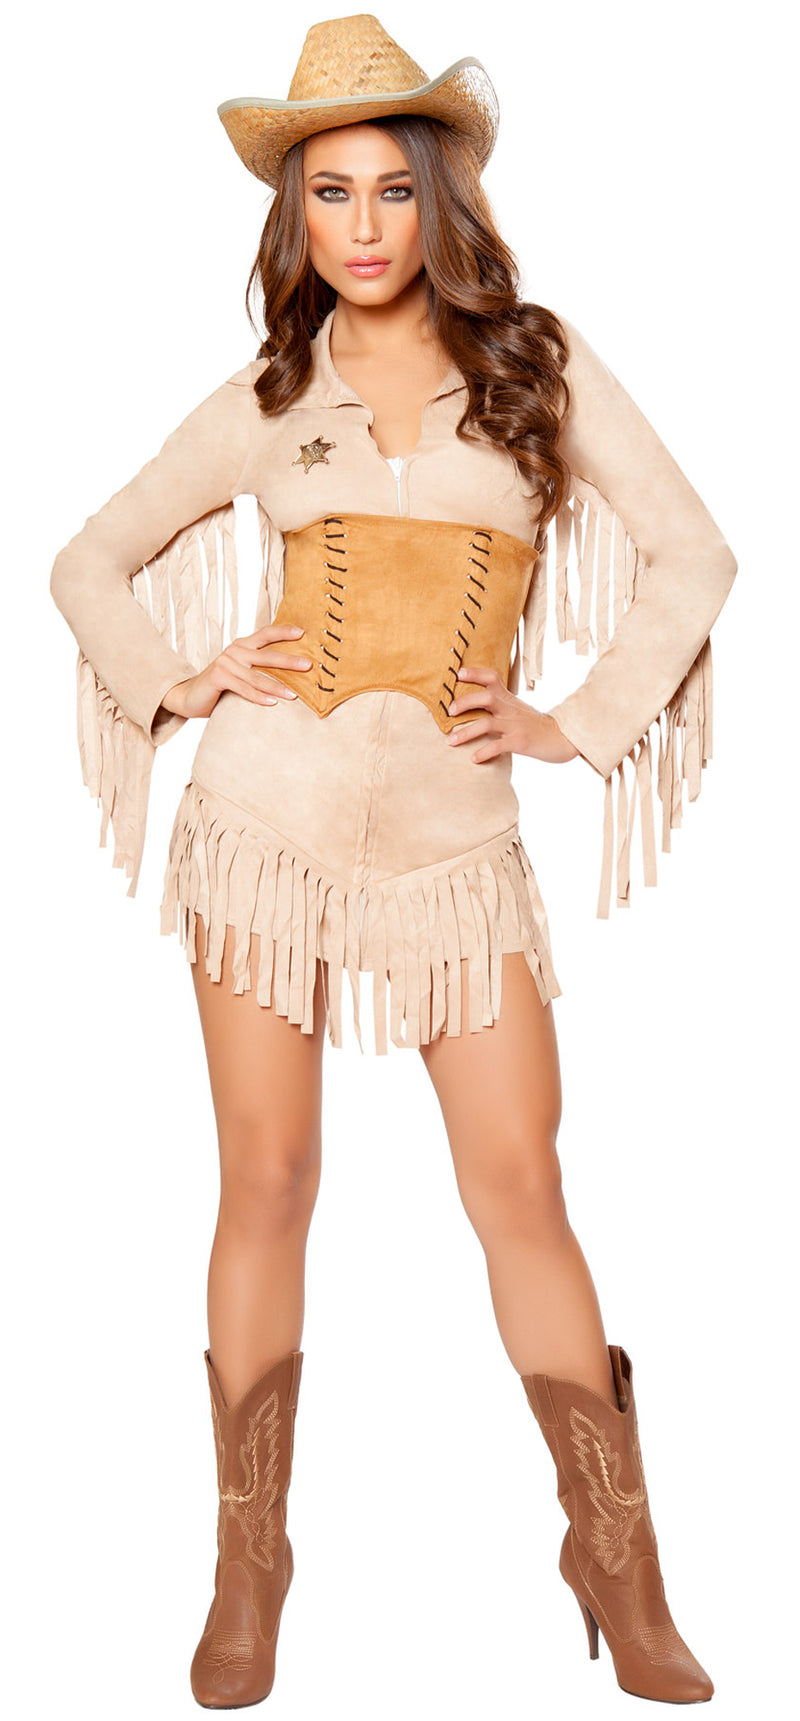 RM-10070 Lady Law Sheriff Costume front